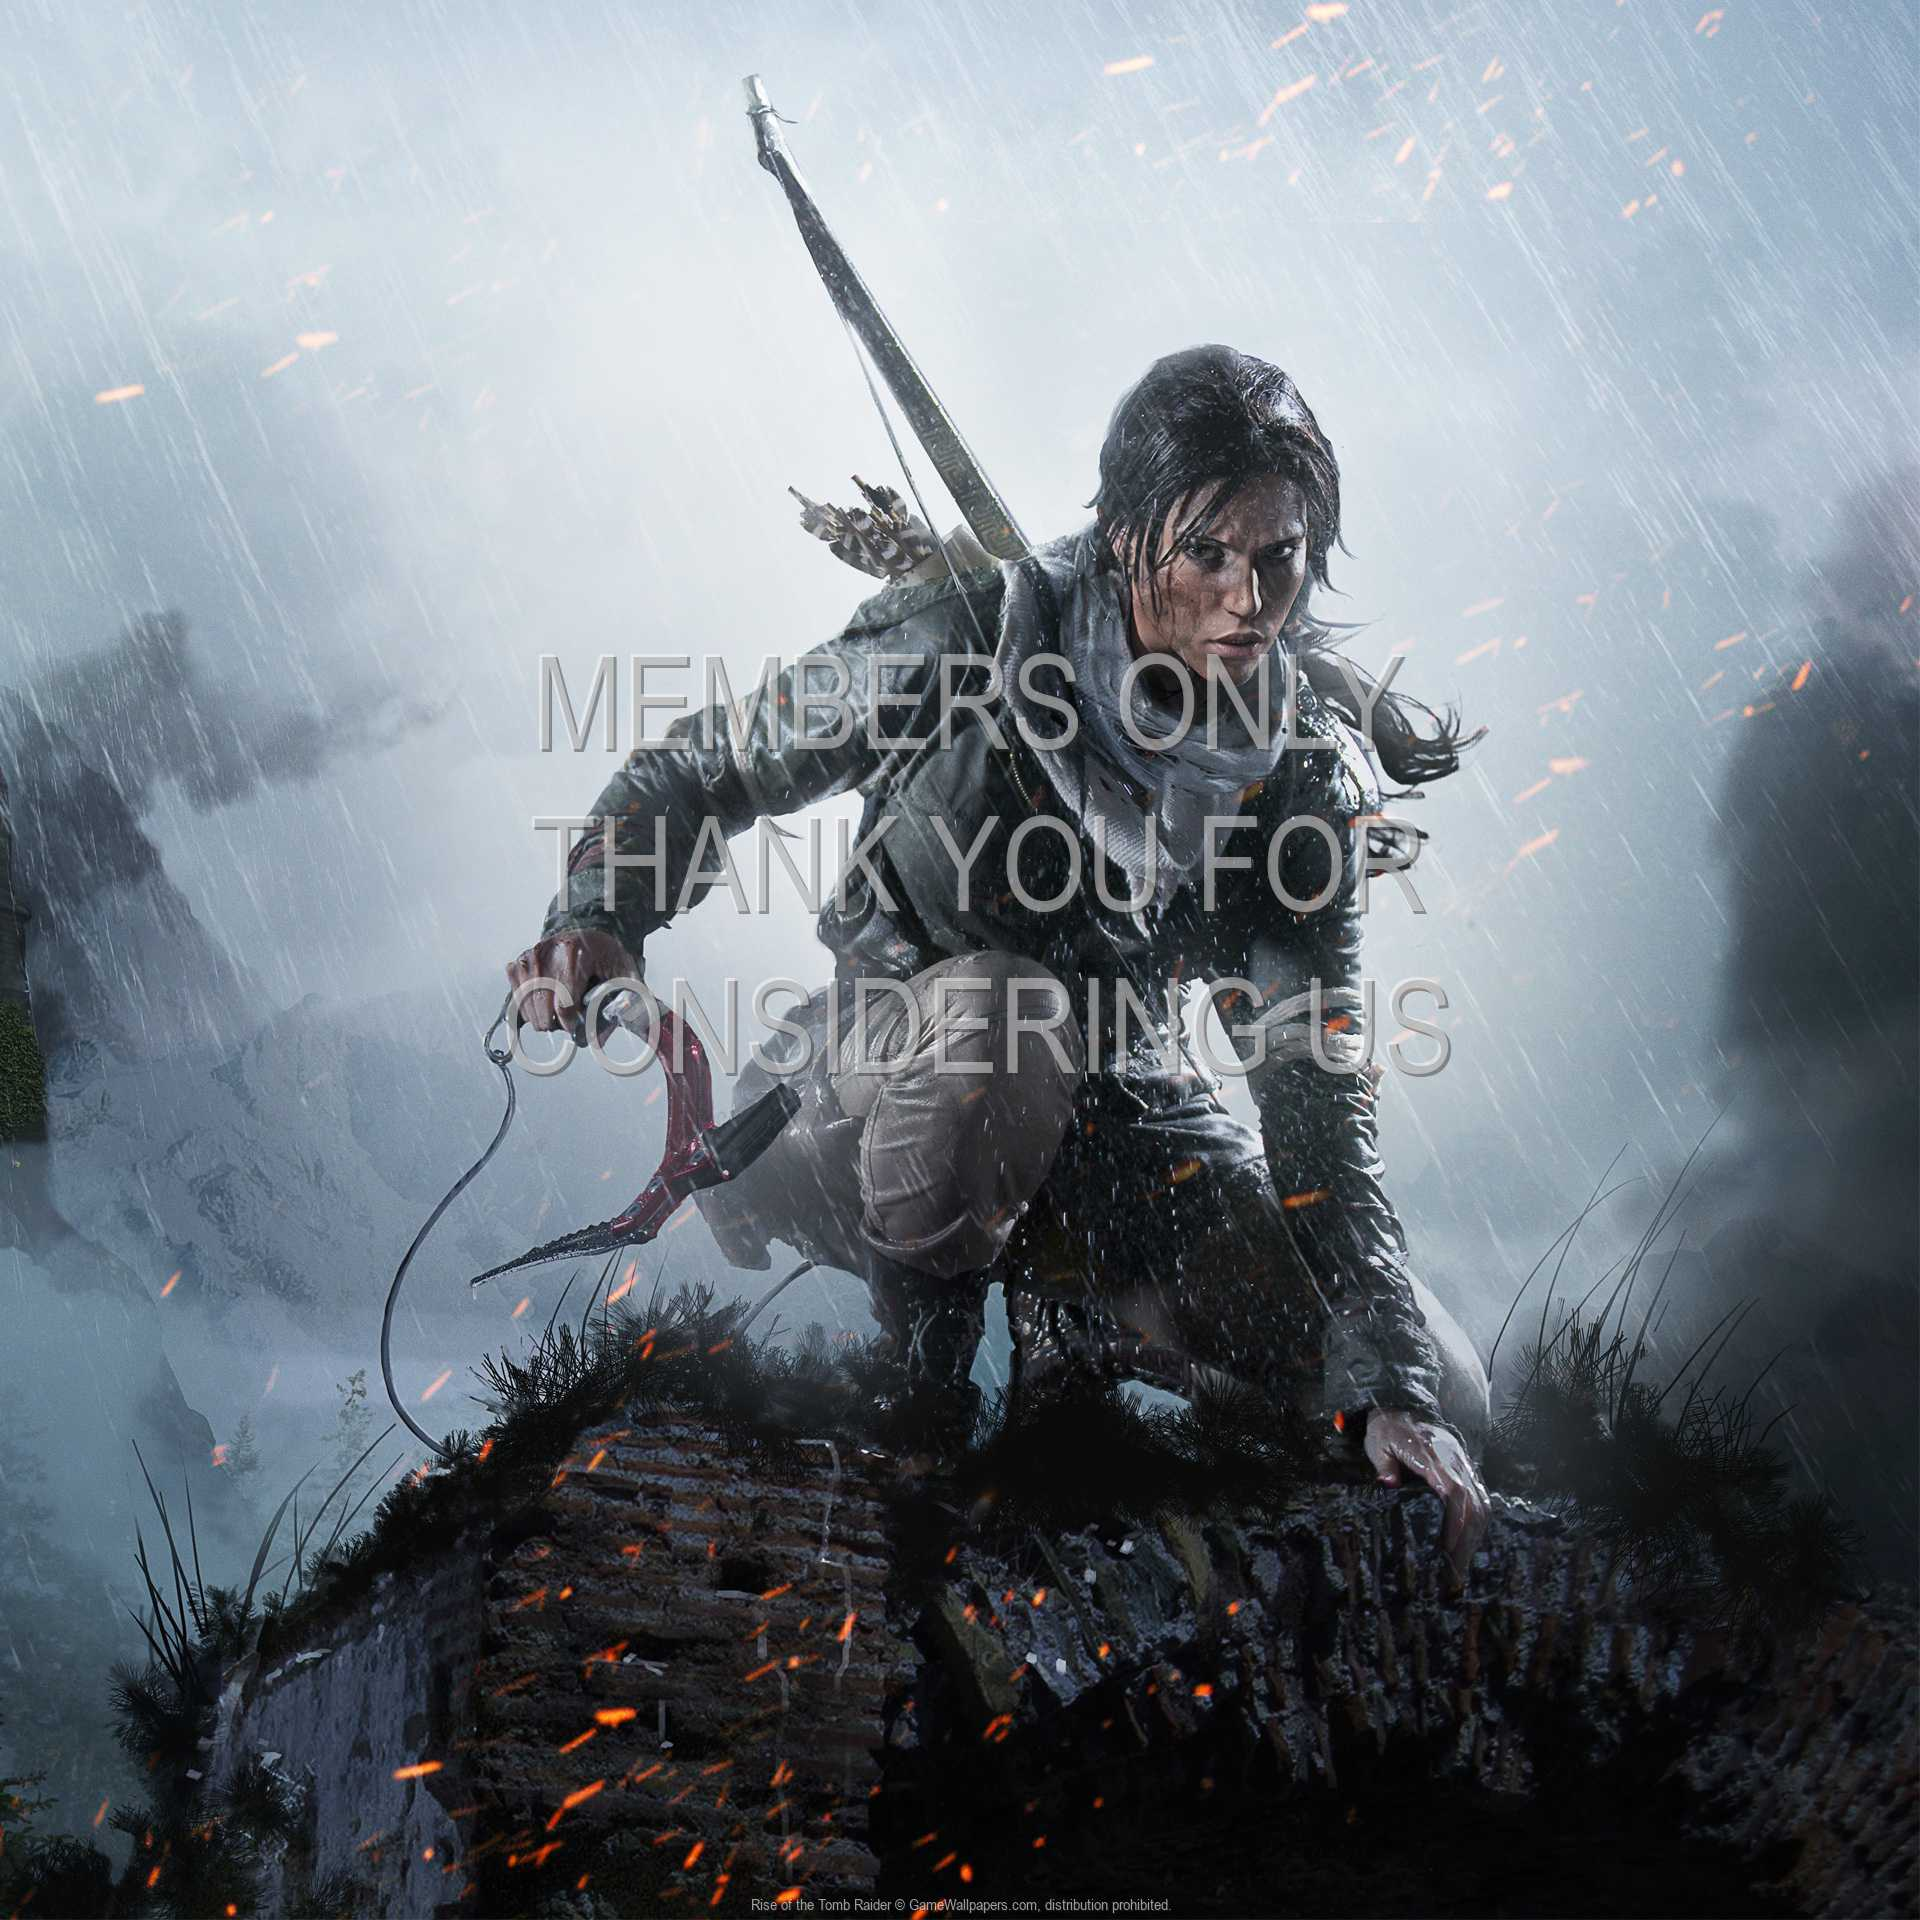 Rise of the Tomb Raider 1080p Horizontal Mobile wallpaper or background 13